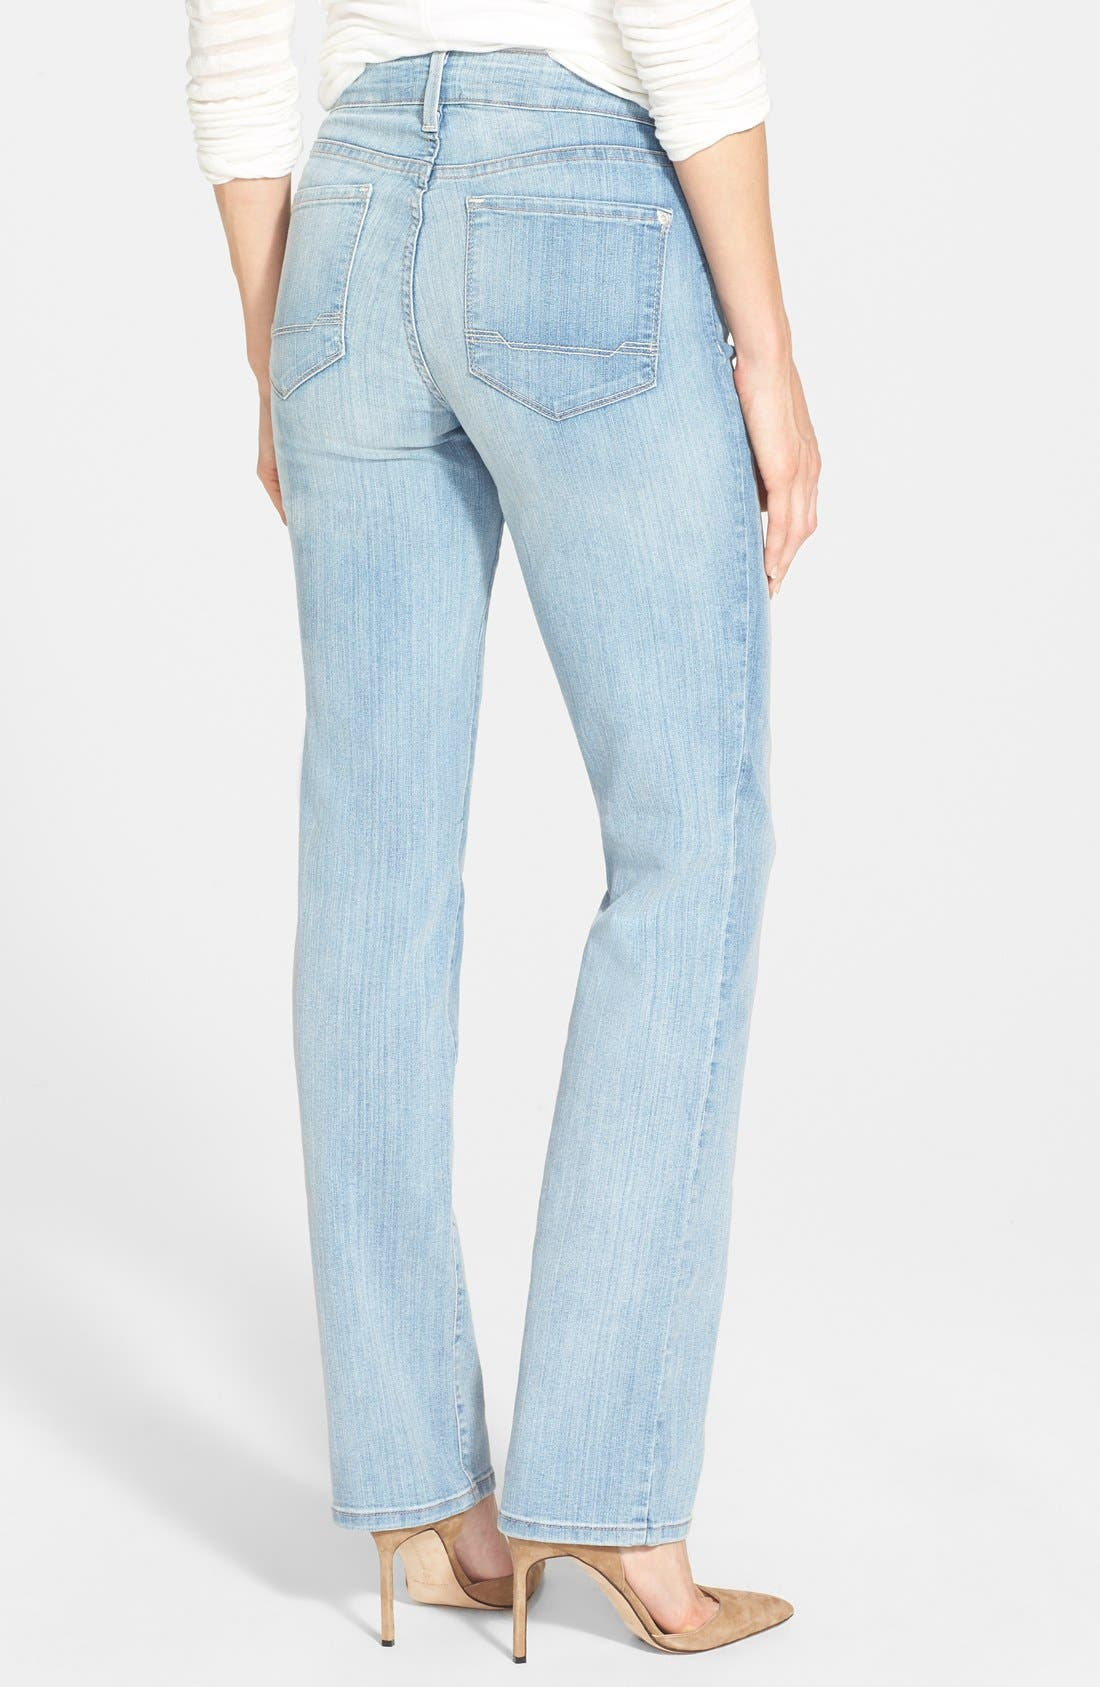 Alternate Image 2  - NYDJ 'Marilyn' Stretch Straight Leg Jeans (Manhattan Beach)